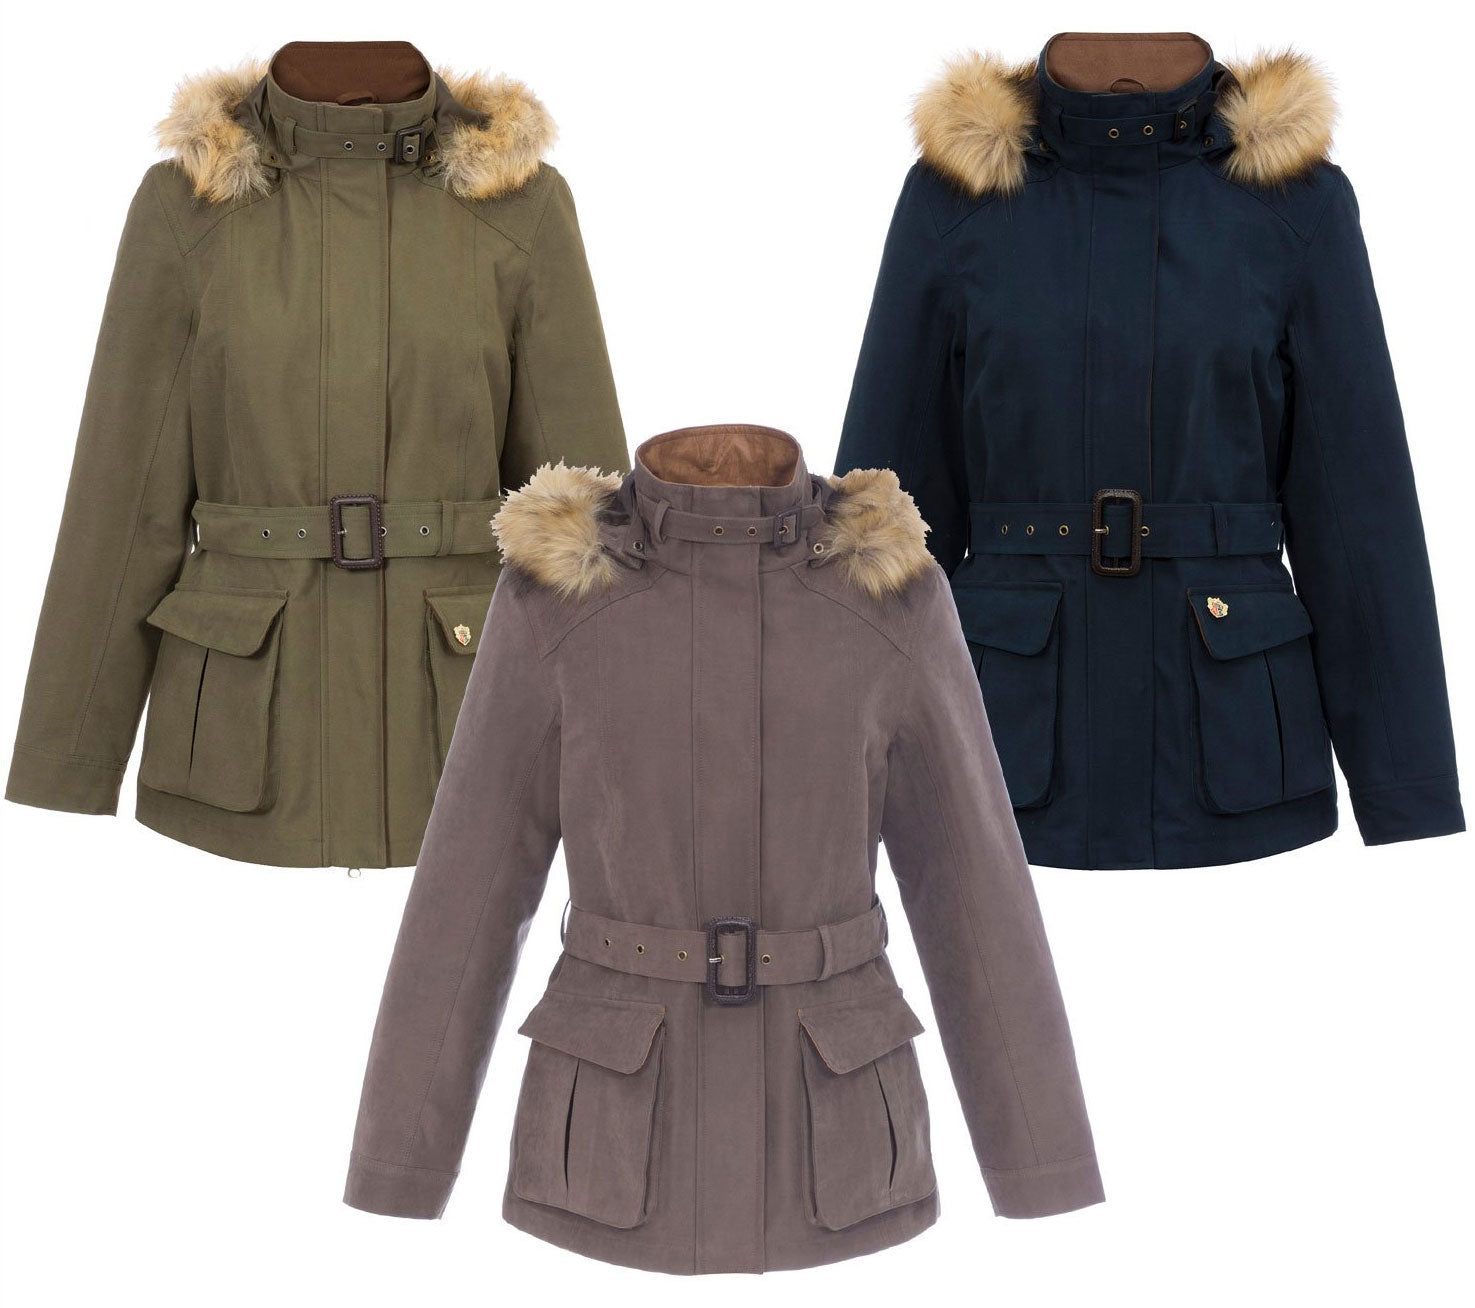 d06acc726 Alan Paine Berwick Jacket with Faux Fur Trim hood in three colours Brown ,  navy and